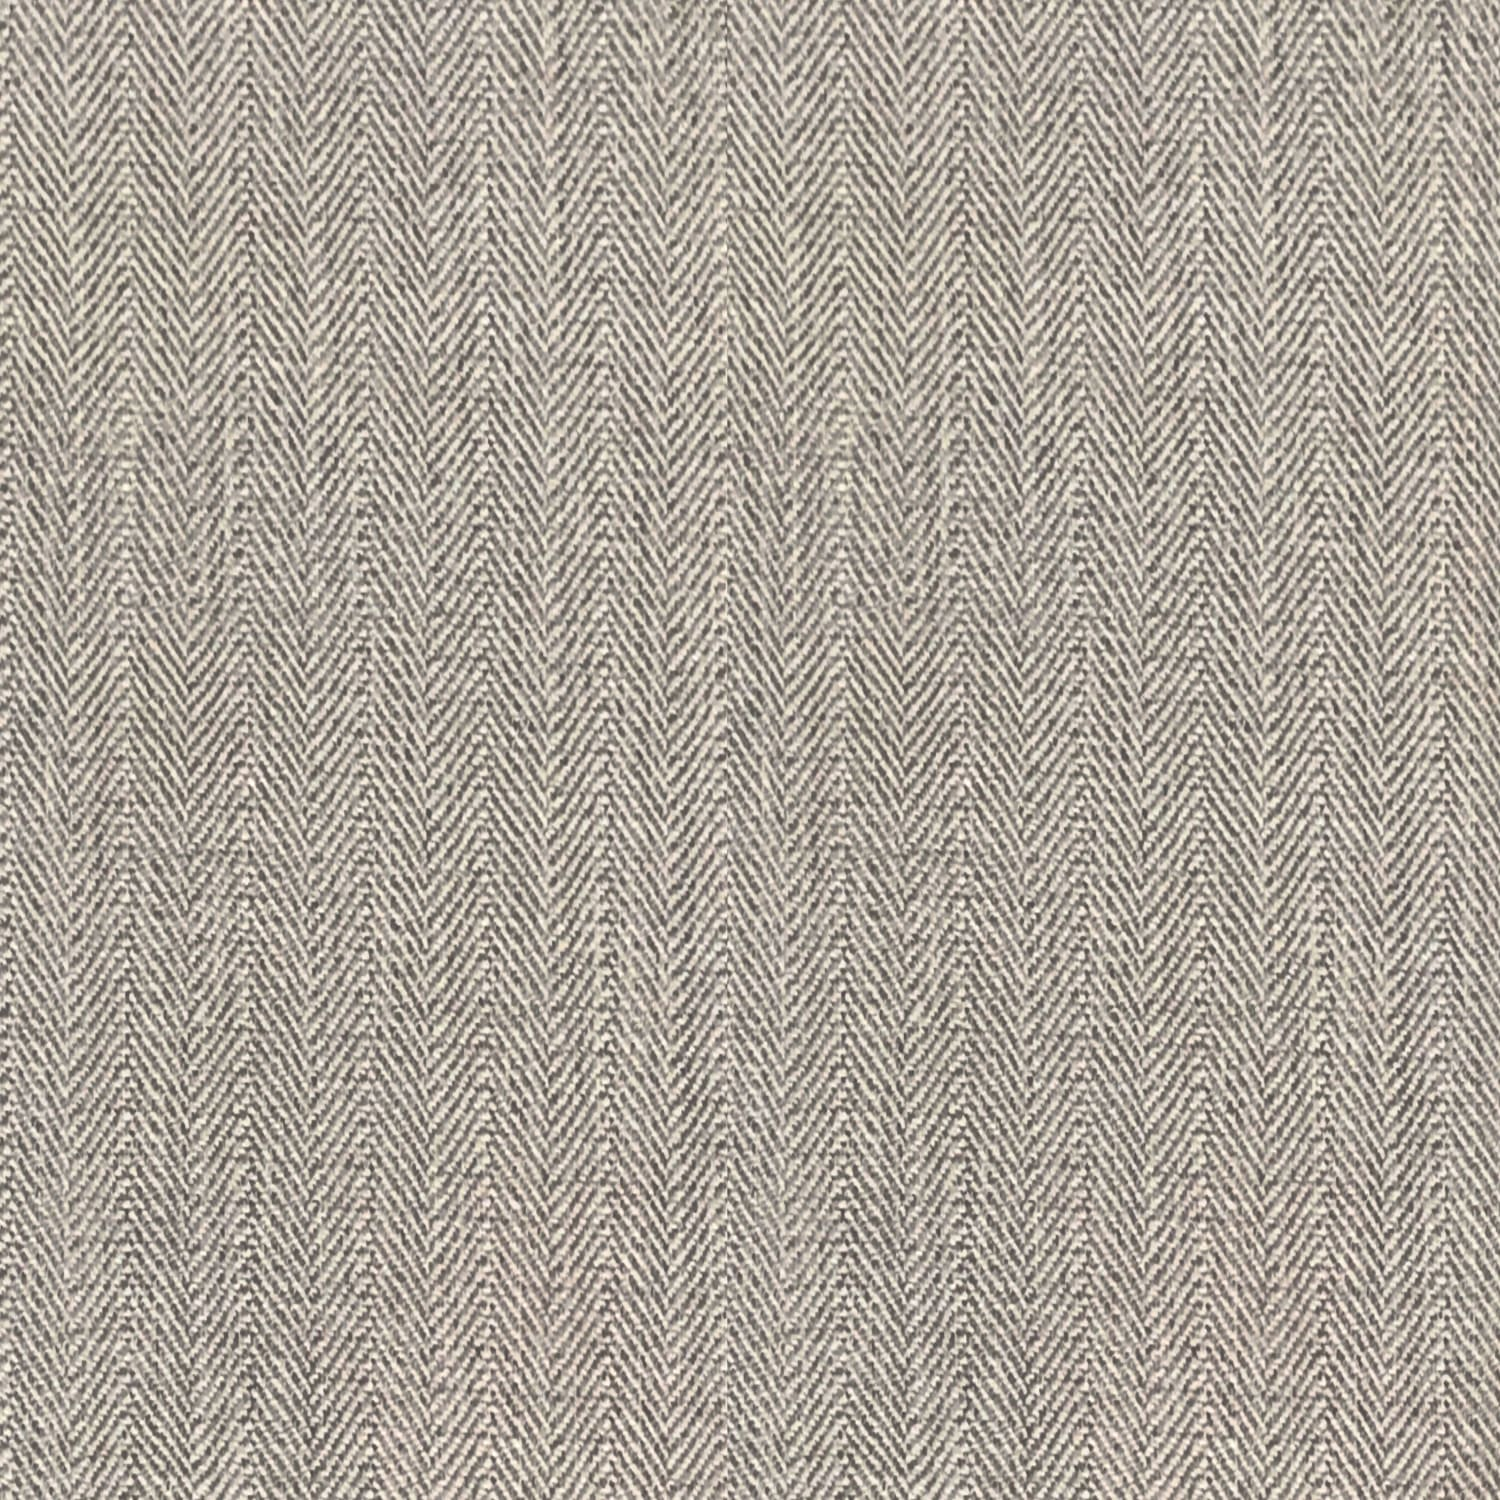 Sunbrella: Boss Tweed Stone (grade 3): #BOS10163<br>Extreme durability; cleans with water; no sun discoloration